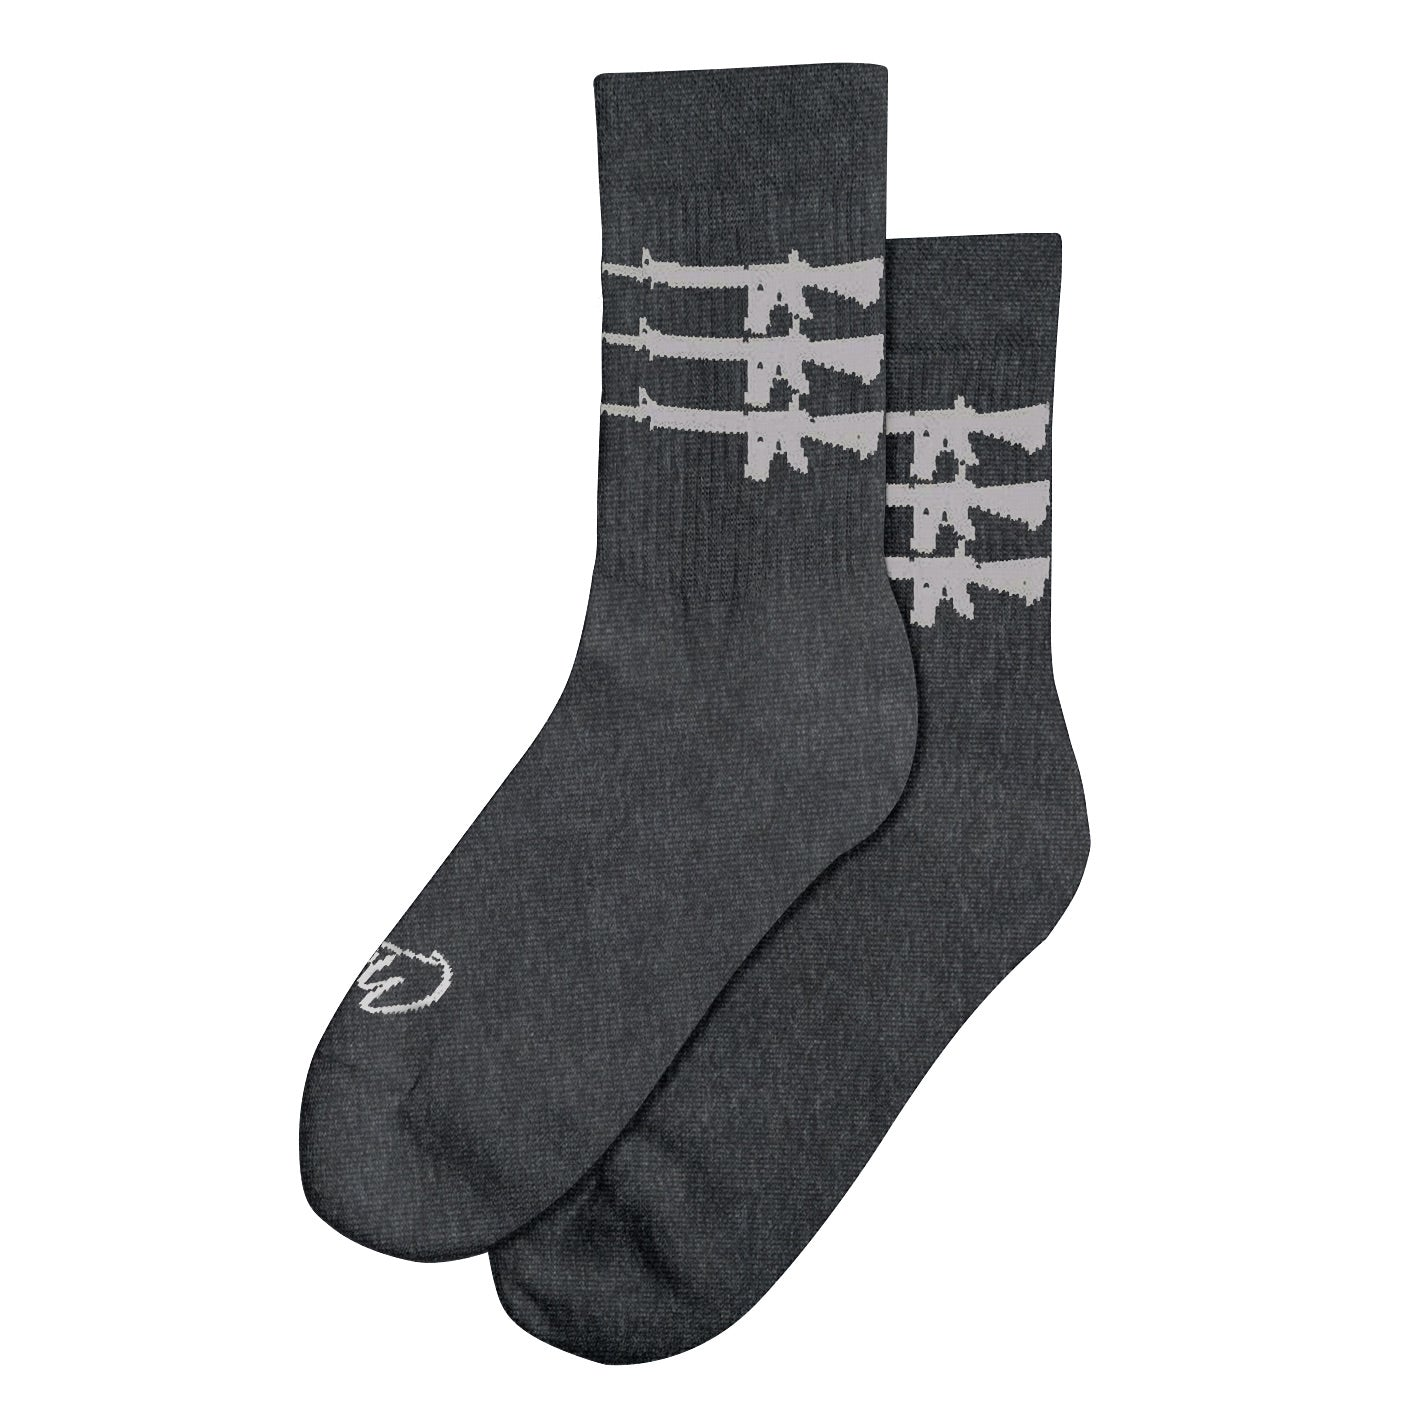 """Triplegun"" Socks - Grey"